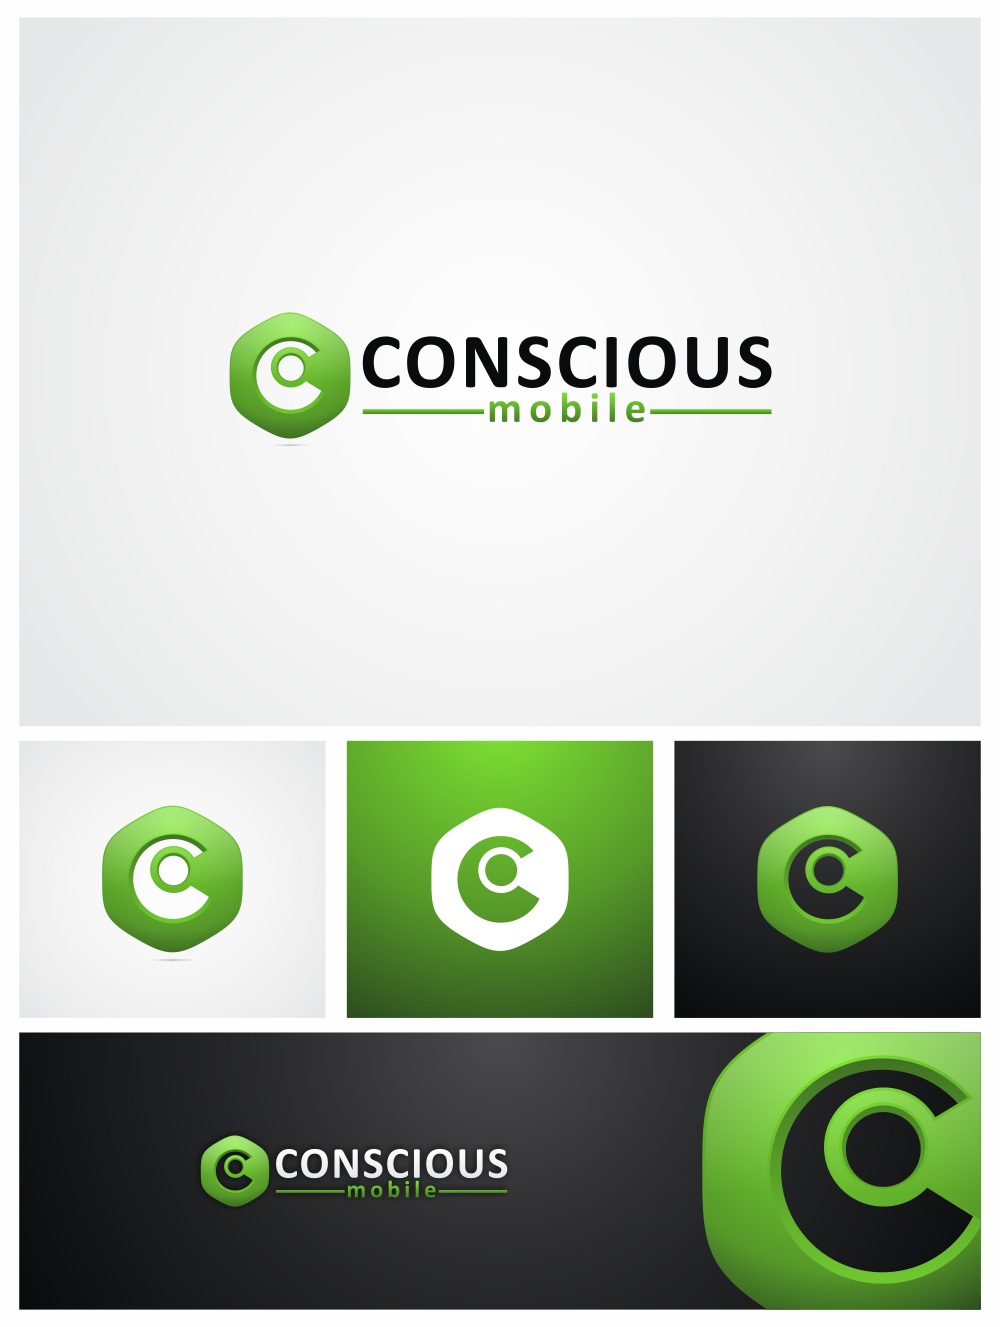 New logo wanted for CONSCIOUS mobile